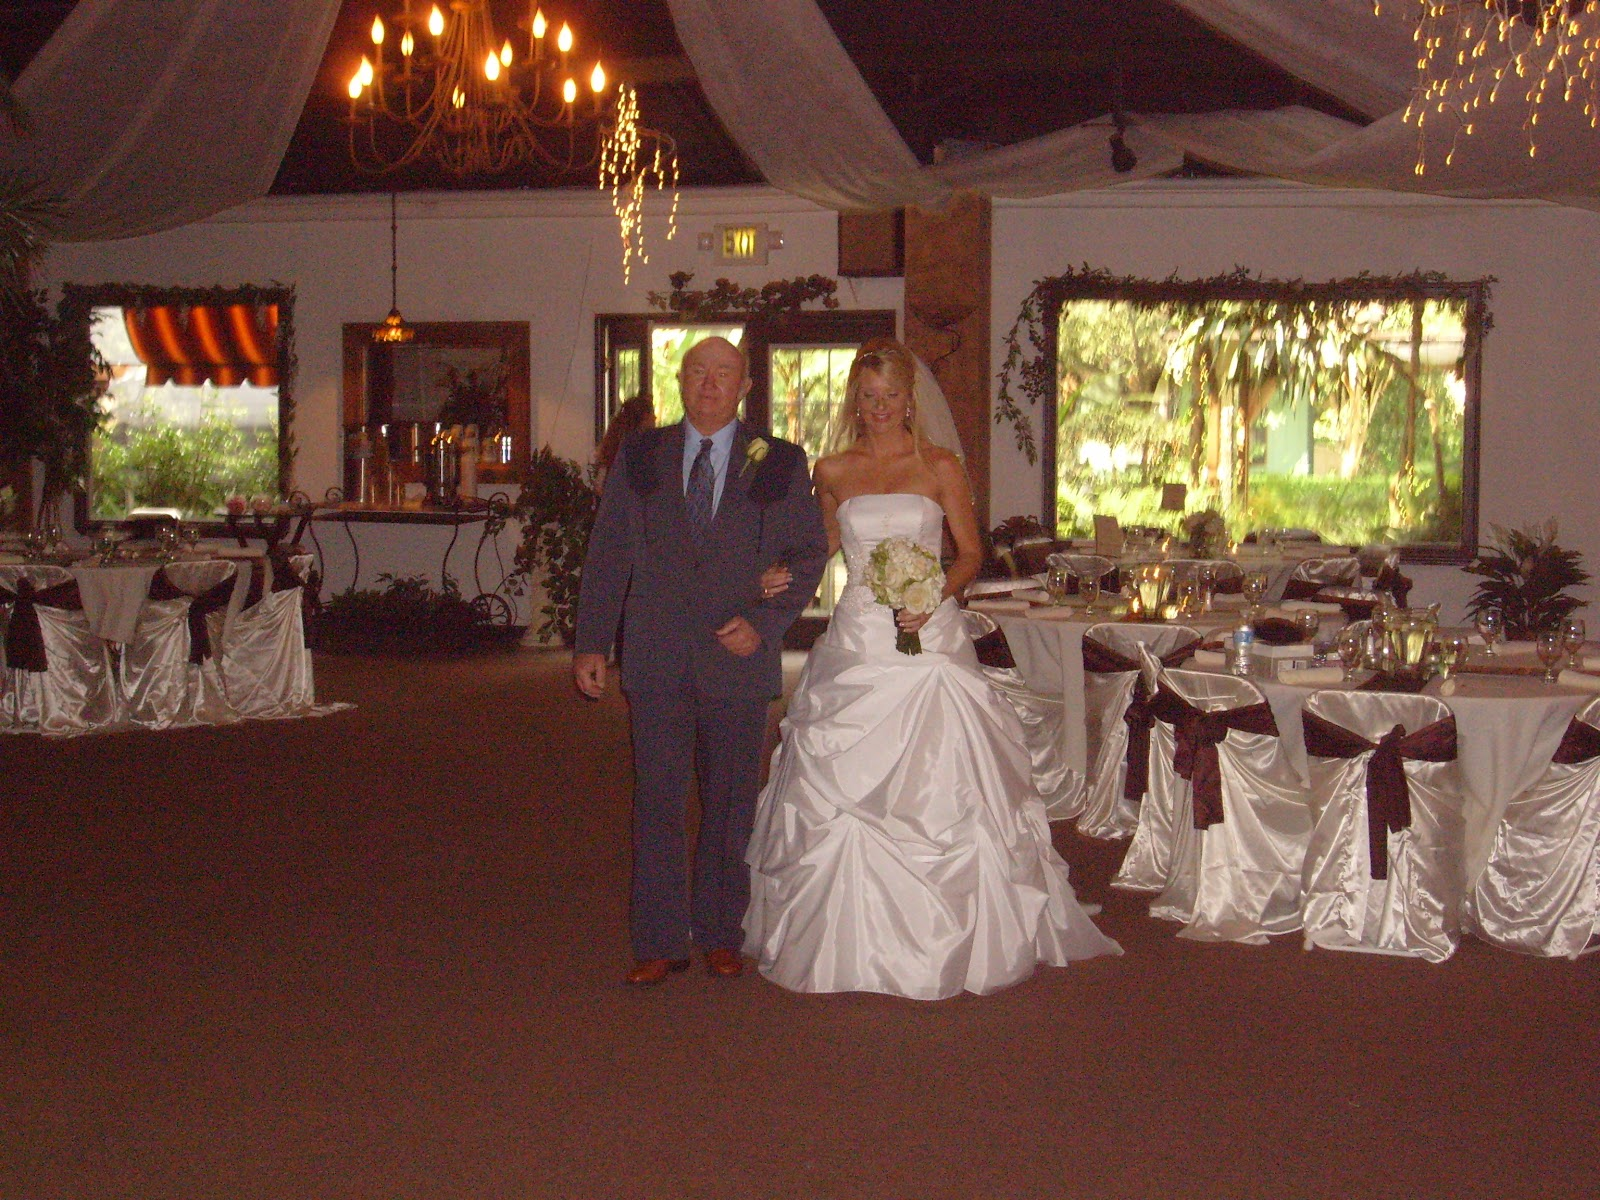 Beths Wedding - S7300150.JPG